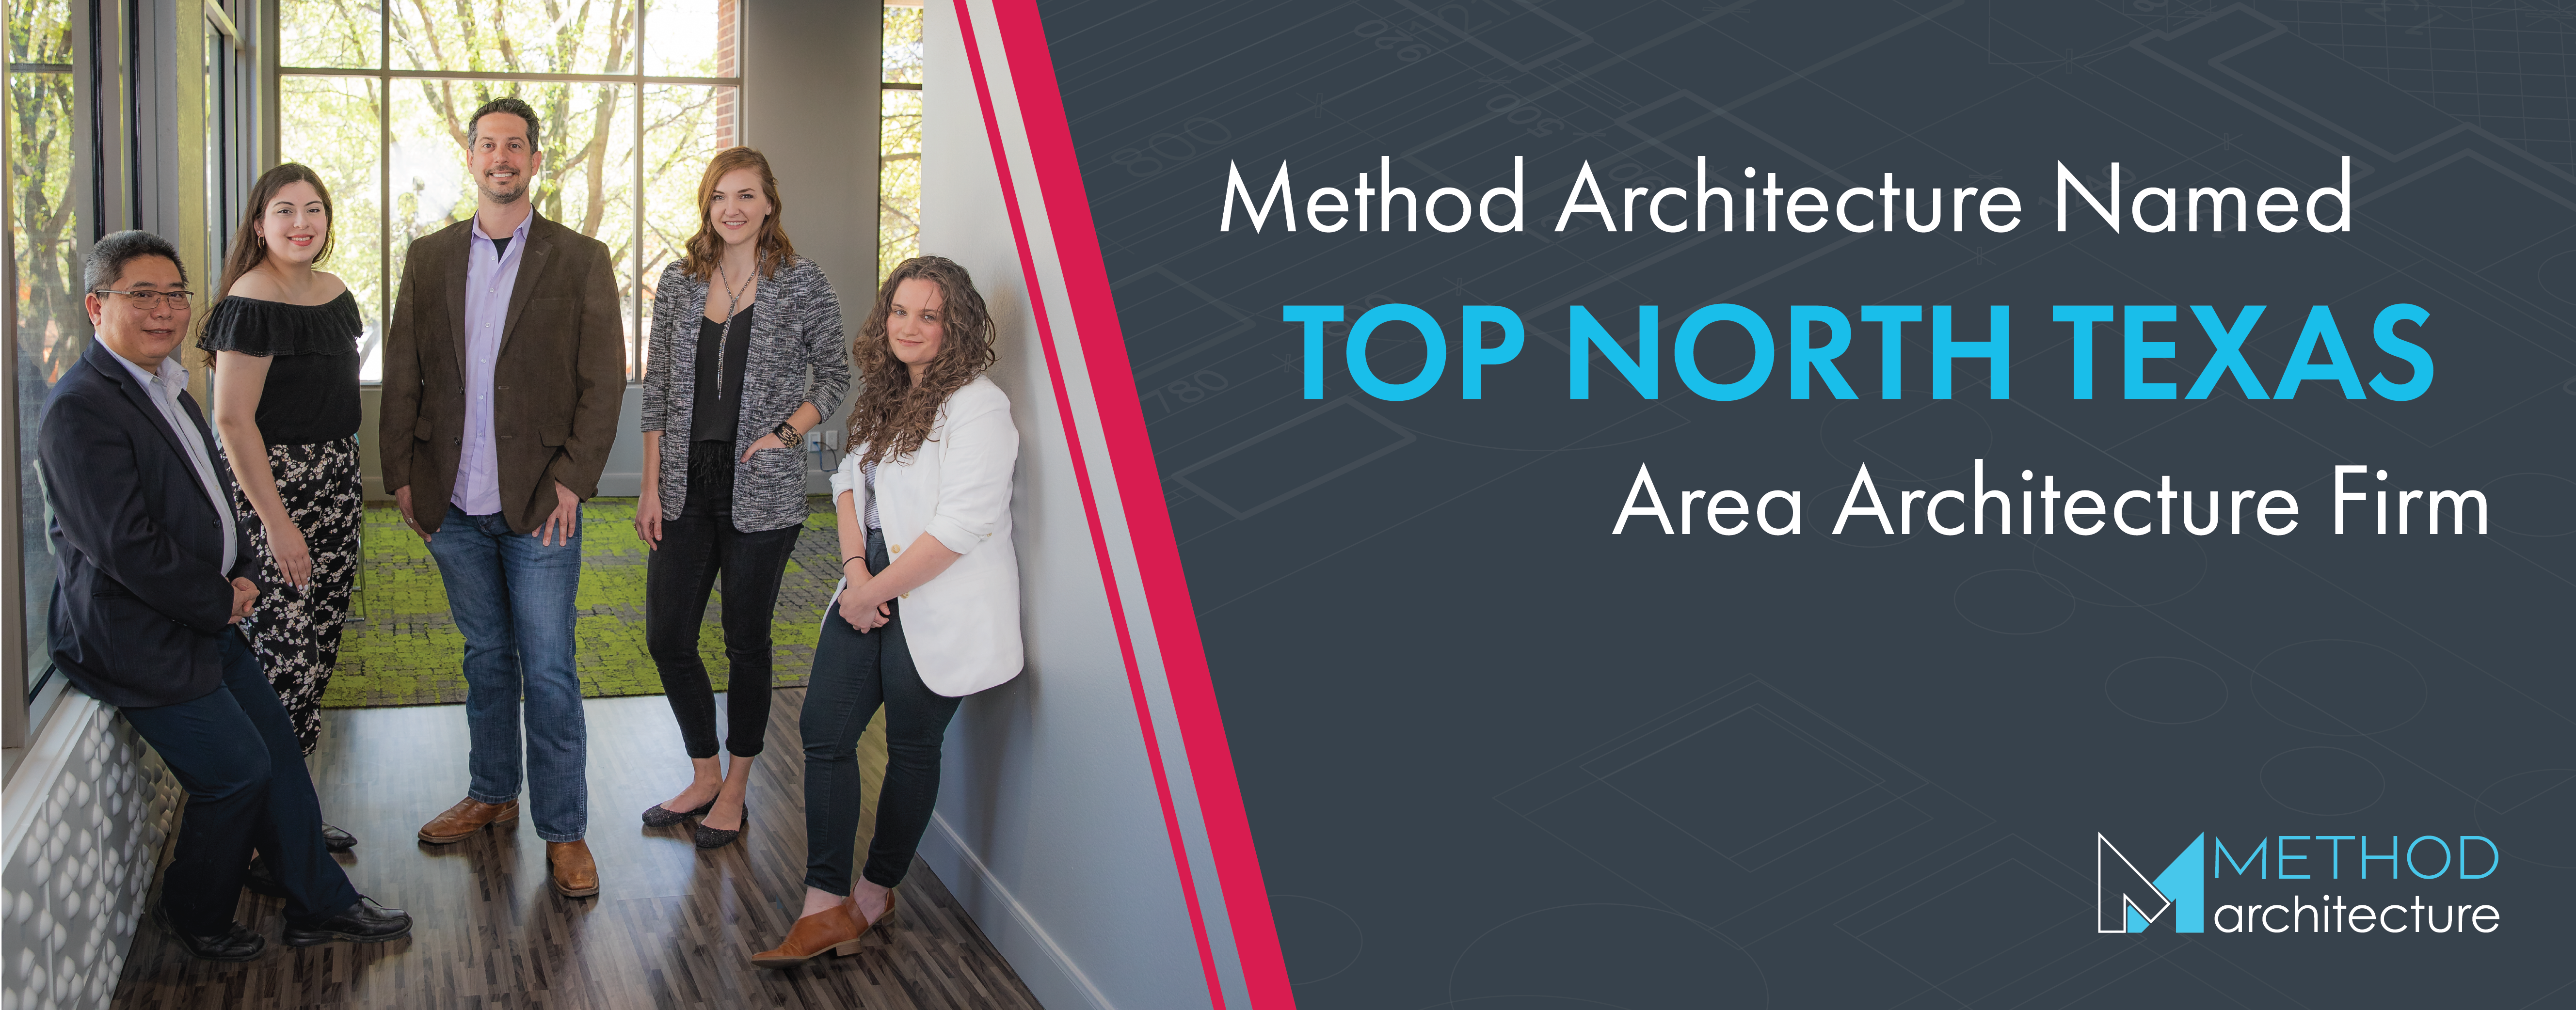 Method Architecture Named Top North Texas Area Architecture Firm